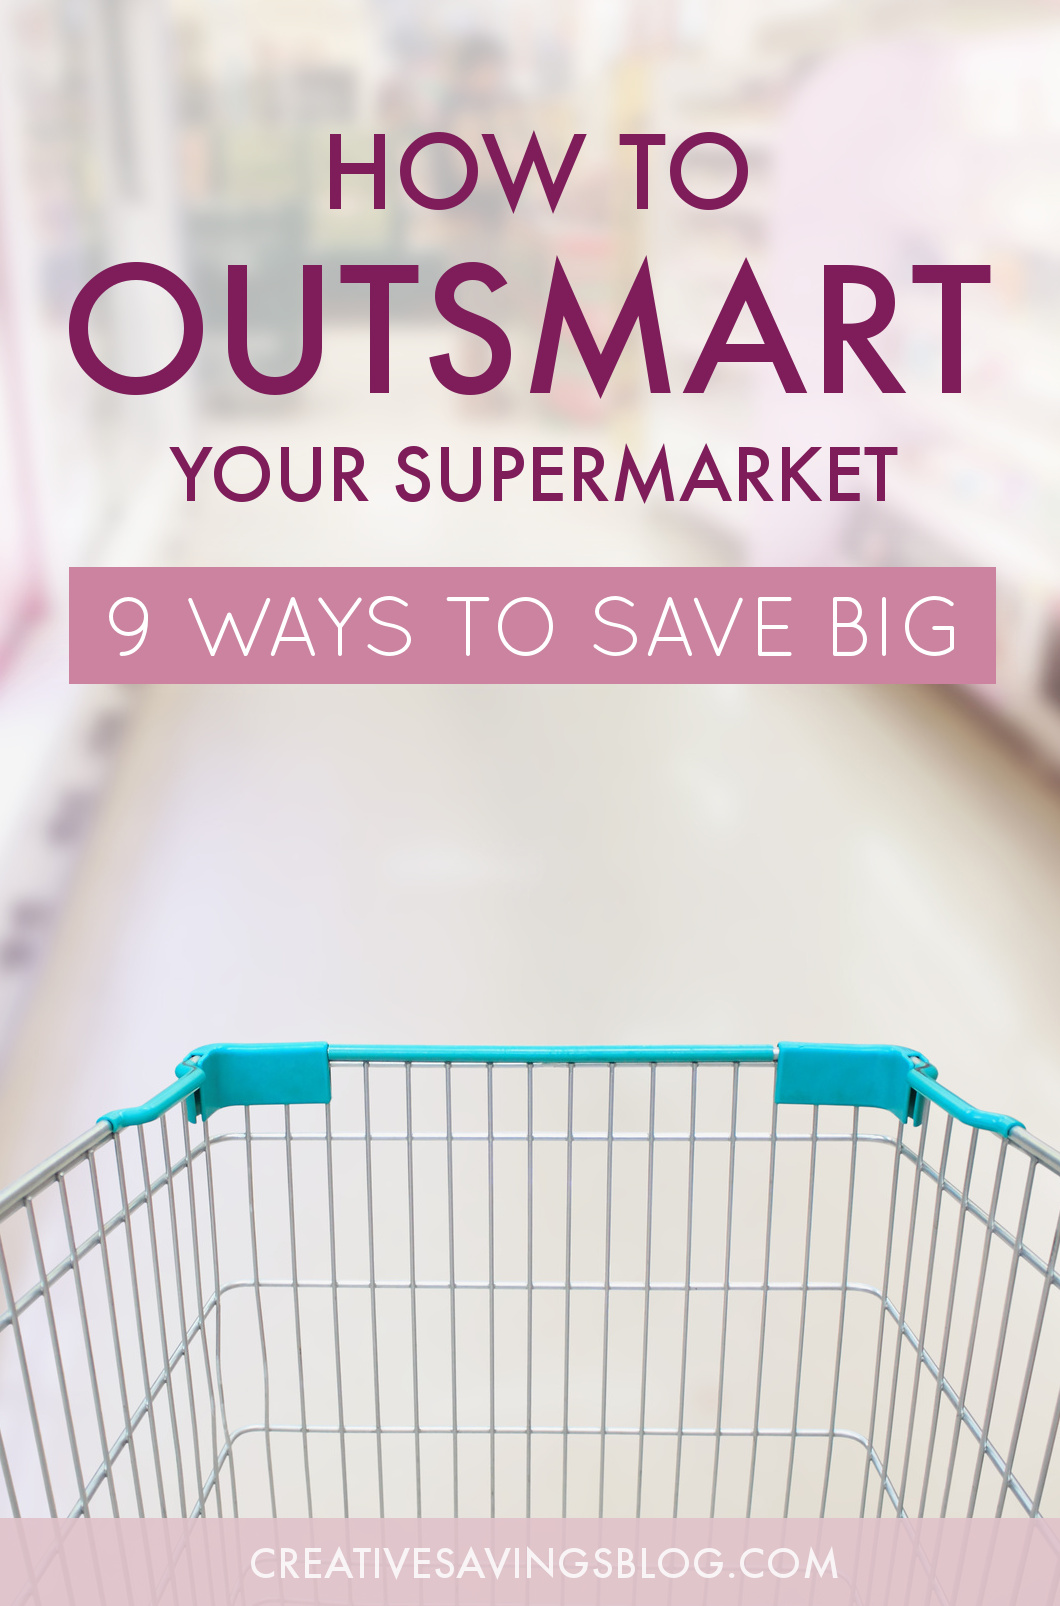 Grocery stores are designed to lure you into spending more than you originally planned. Which means, even if you try to shop smart, they'll use all sorts of tactics to outsmart you! I say it's time to turn the the tables on the grocery store and outsmart them instead. These nine tips explain exactly how to put more money in your pocket, no matter where you shop! #shoppingtips #groceryshopping #groceryshoppinghacks #moneysavingtips